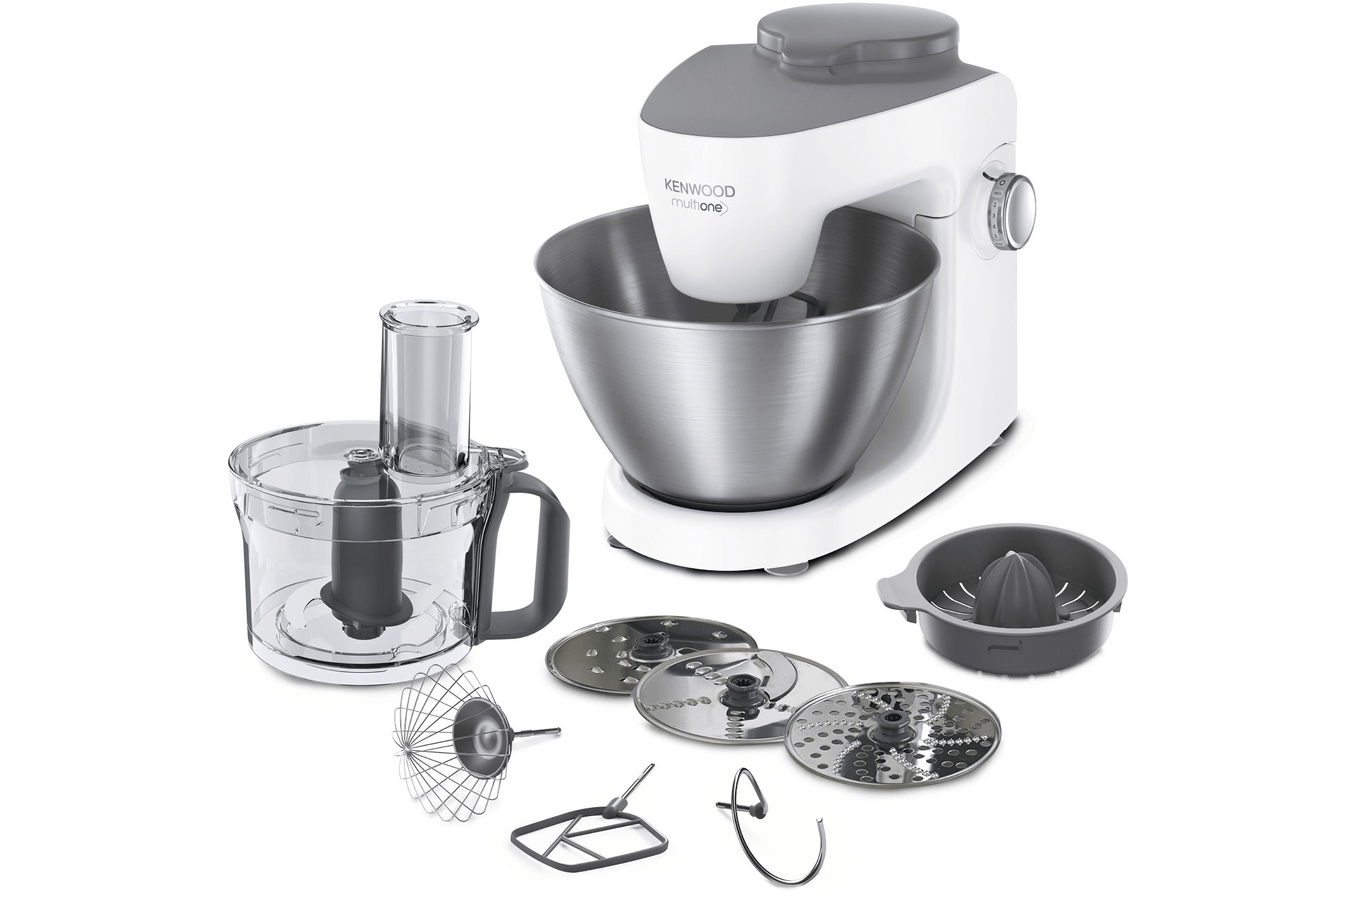 Robot Cuisine Kenwood Robot Patissier Kenwood Khh300wh Multione 4156960 Darty